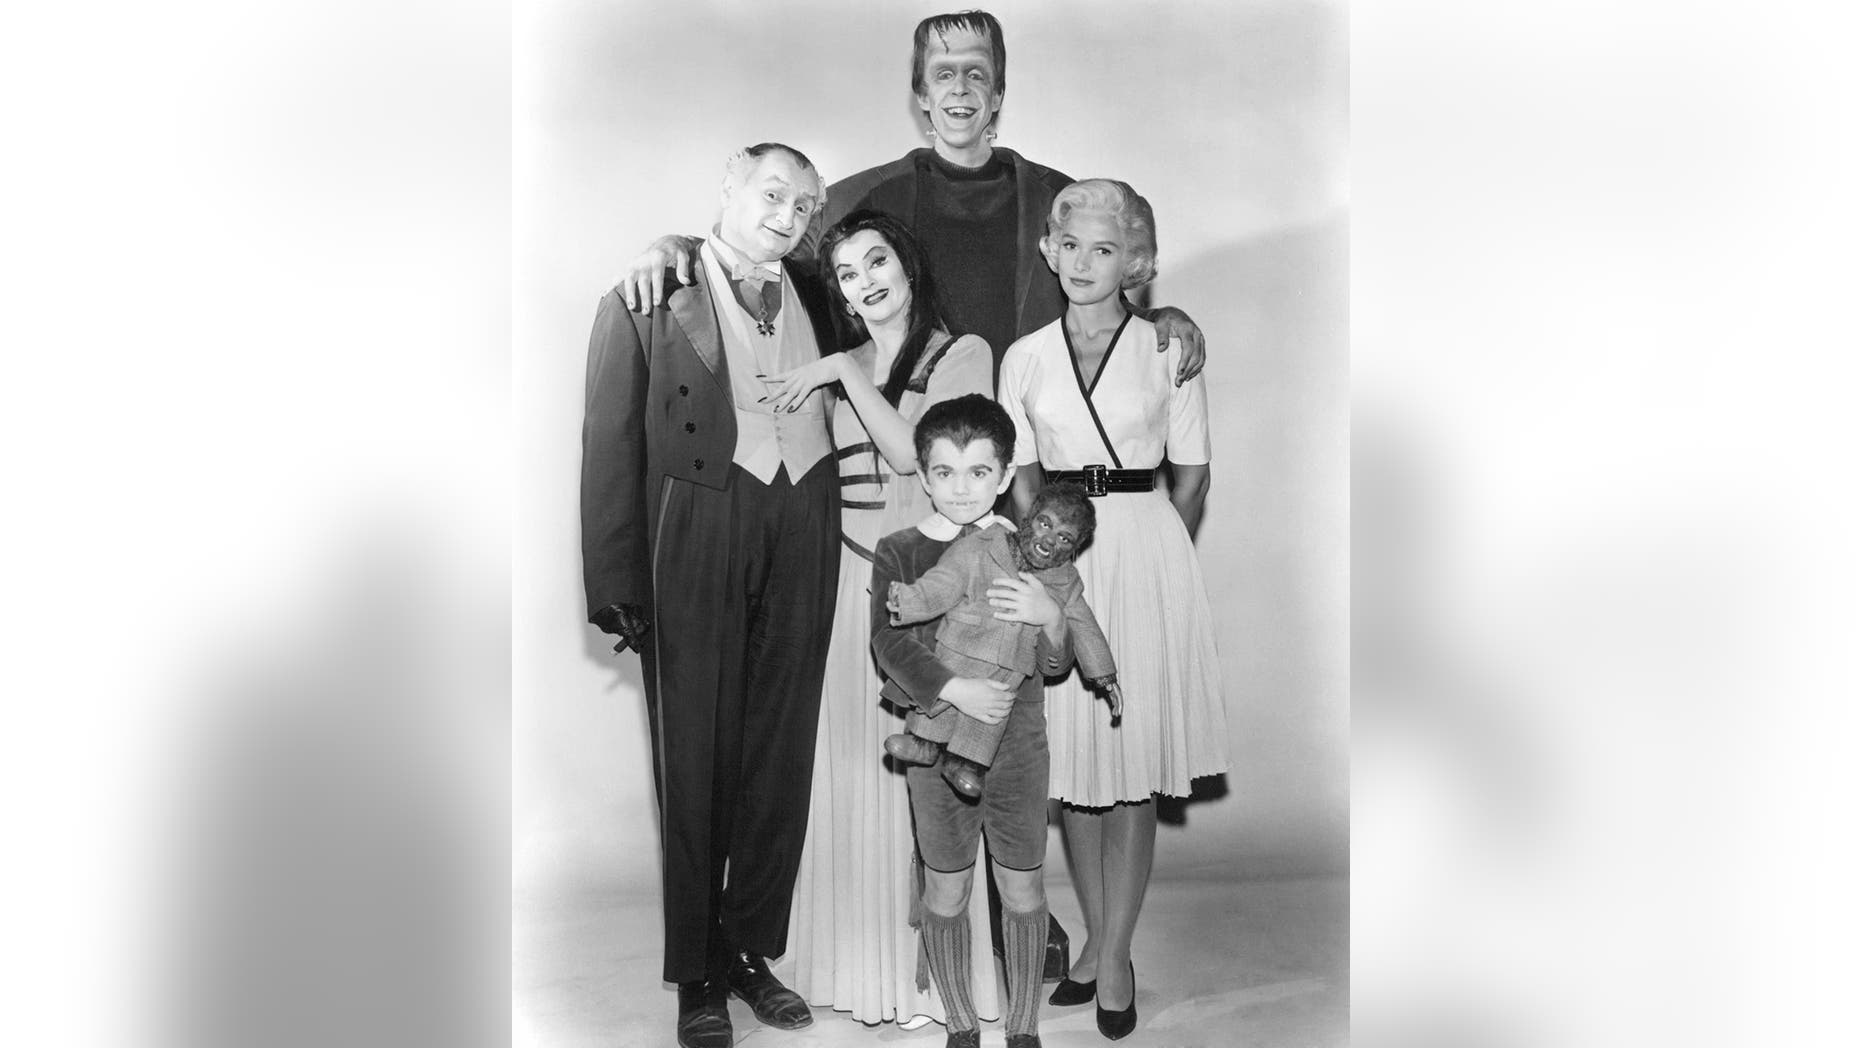 """Members of the Munster family in a publicity still for Season 1 of the comedy-horror TV series """"The Munsters.,"""" 1964. Left to right: Al Lewis (1923 - 2006) as Grandpa, Yvonne De Carlo as Lily Munster, Butch Patrick as Eddie Munster, Fred Gwynne as Herman Munster and Beverley Owen as Marilyn Munster."""